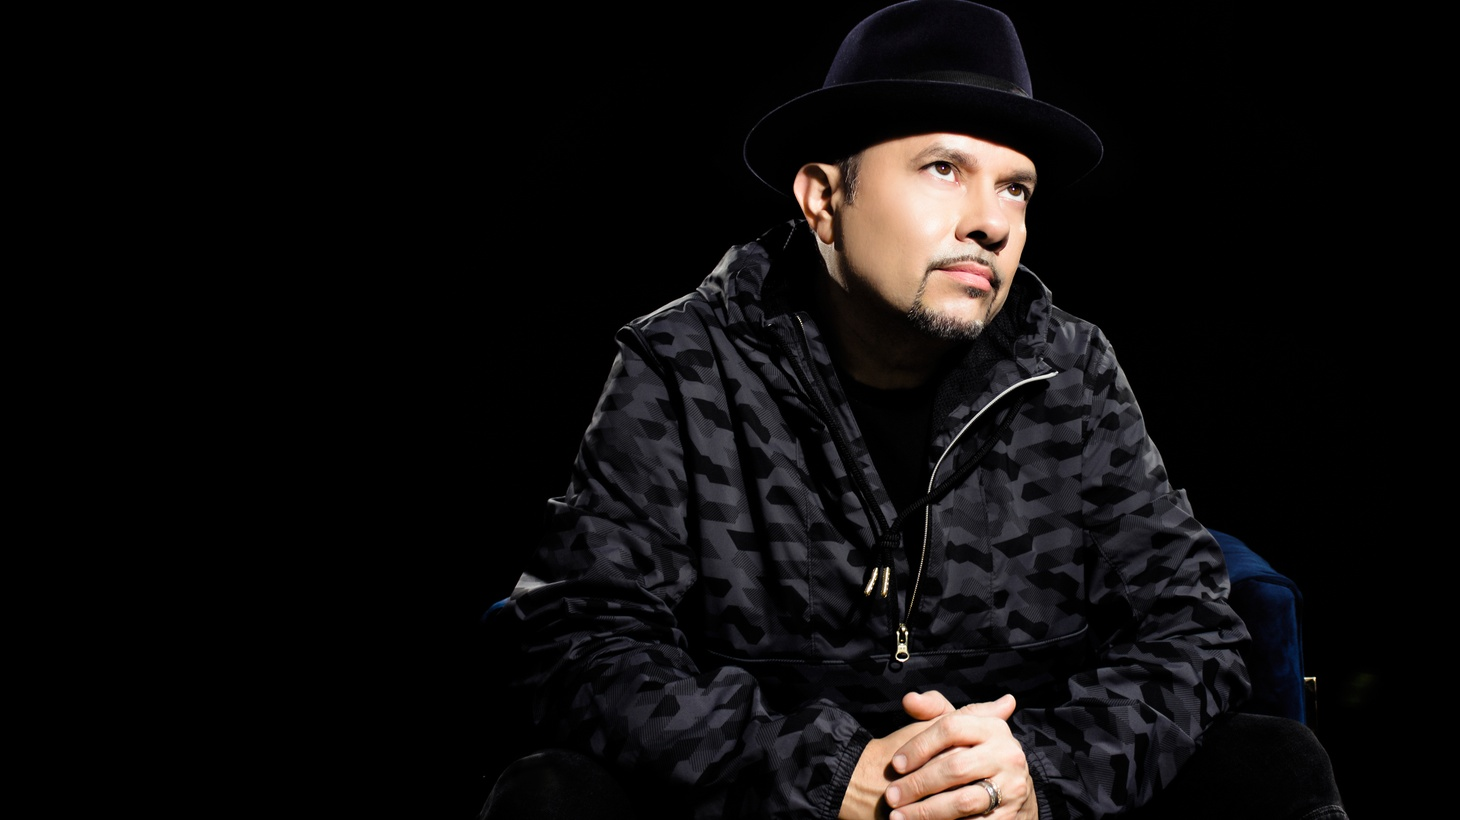 2017 has been a good year for one of the godfathers of the global dance scene, Louie Vega. The living legend has recently been nominated for a Grammy Award.